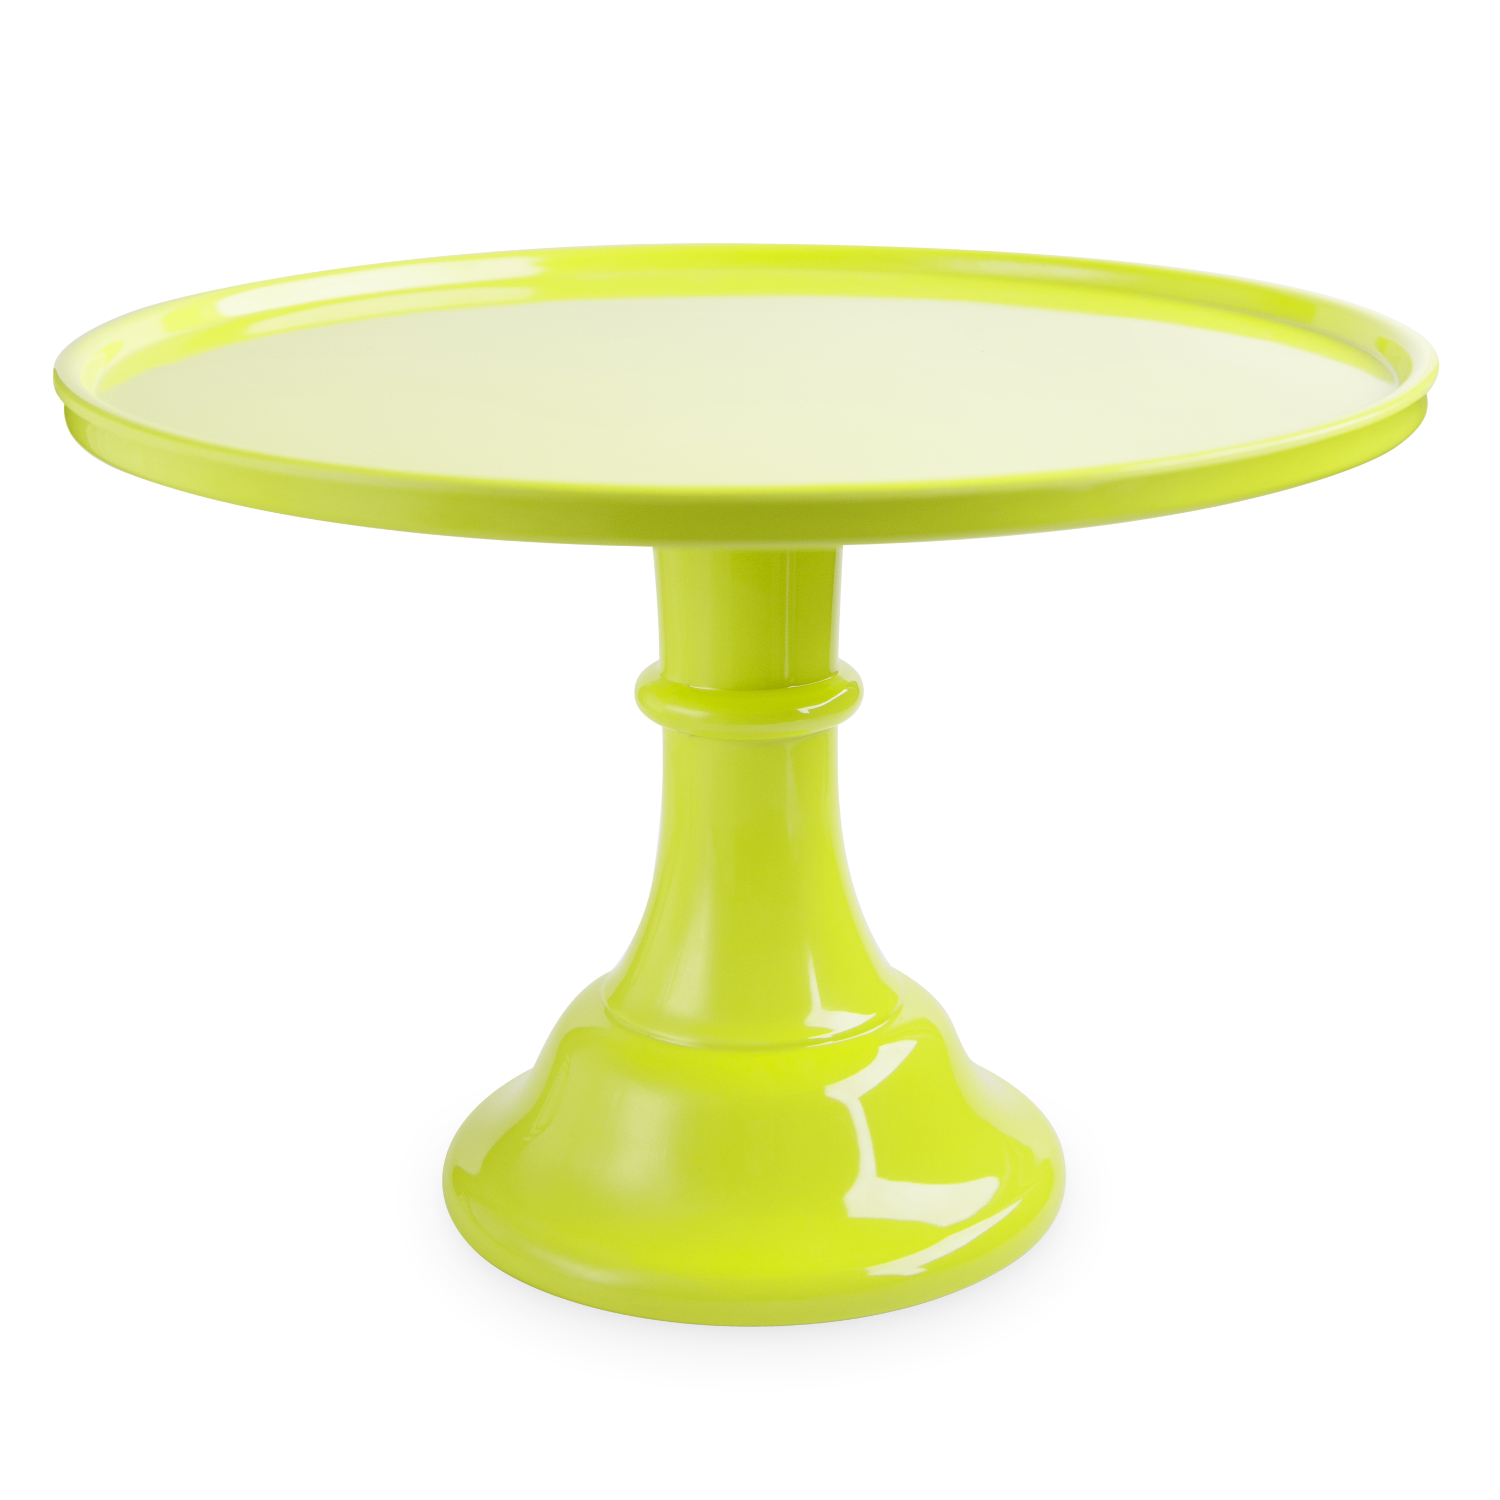 Cakewalk Green Melamine 11.5 Inch Round Single Tier Cake Stand